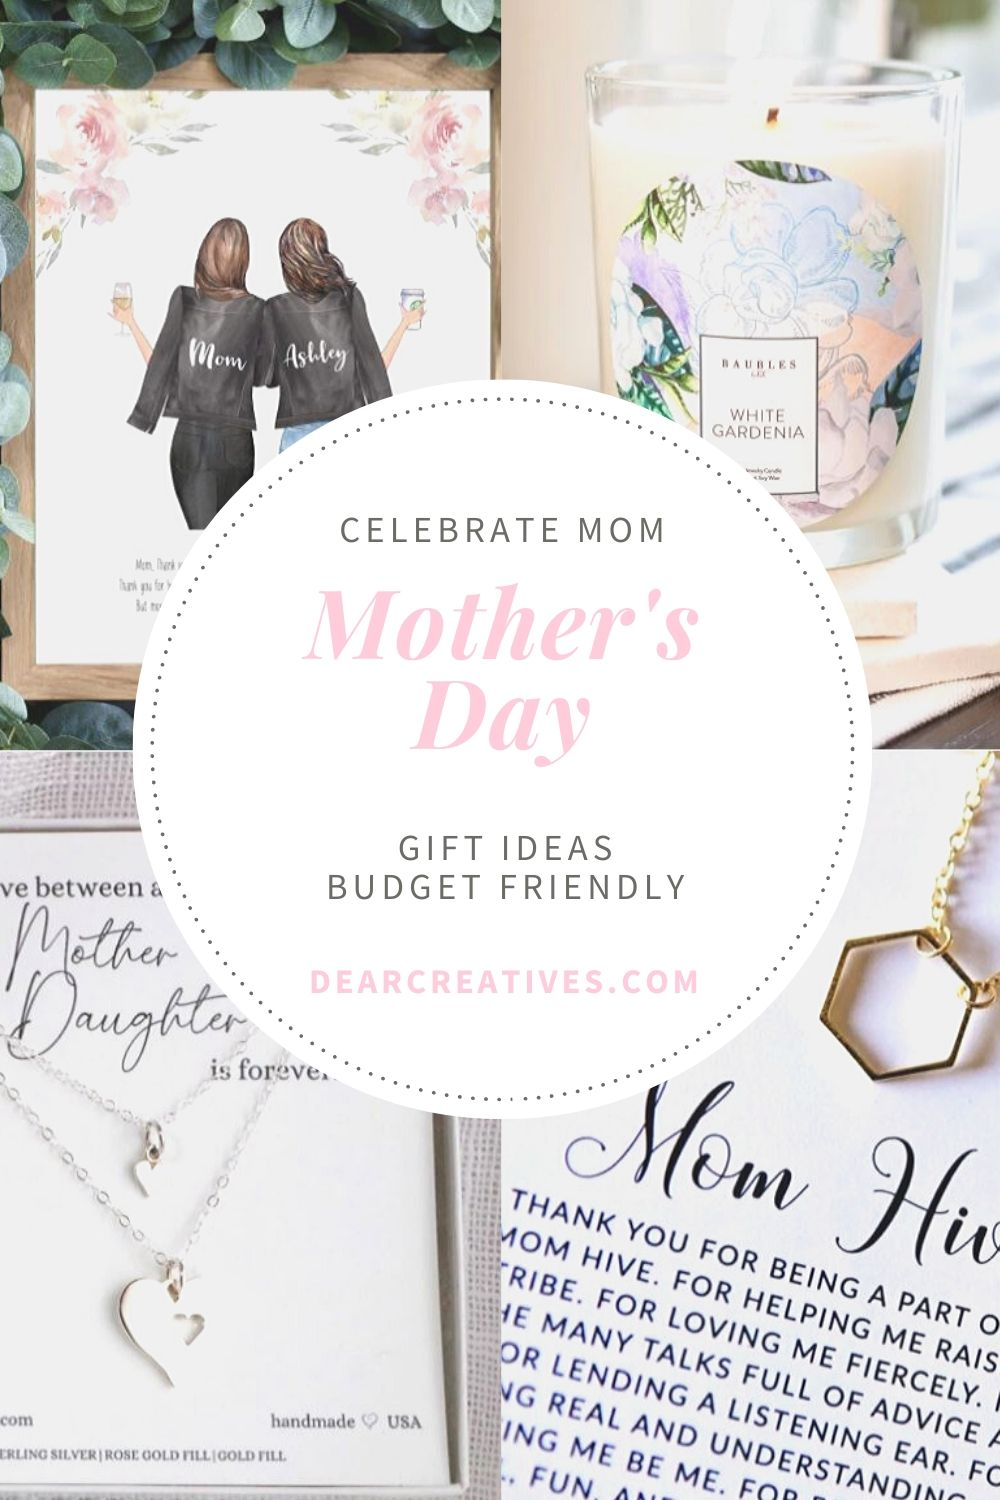 Gift Ideas For Mother's Day (Budget-Friendly)